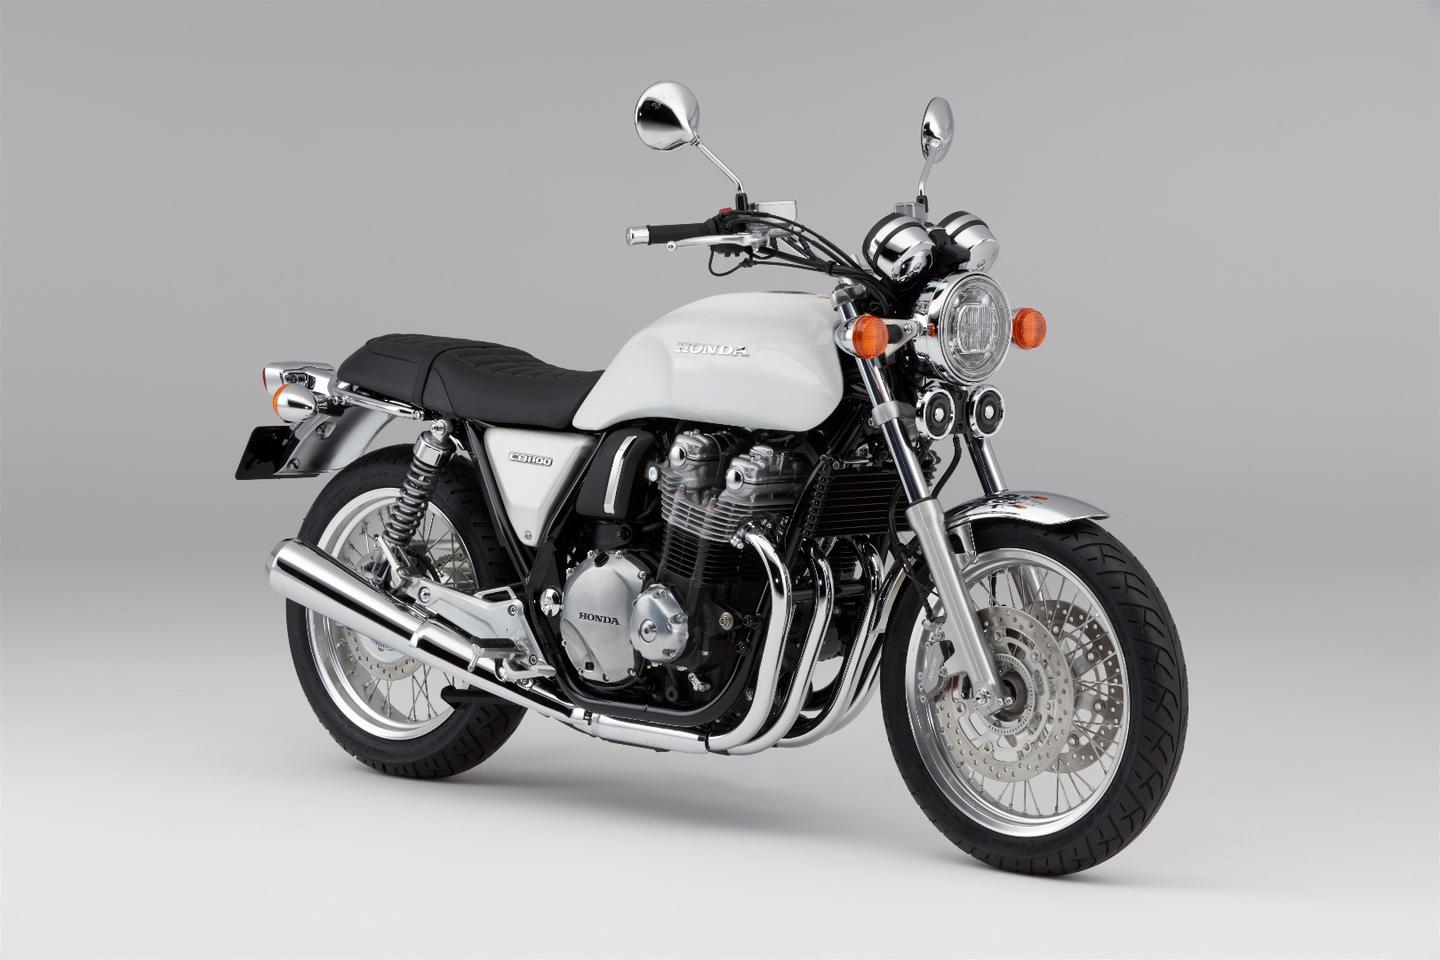 The 2017 Honda CB1100EX in Pearl Sunbeam White color